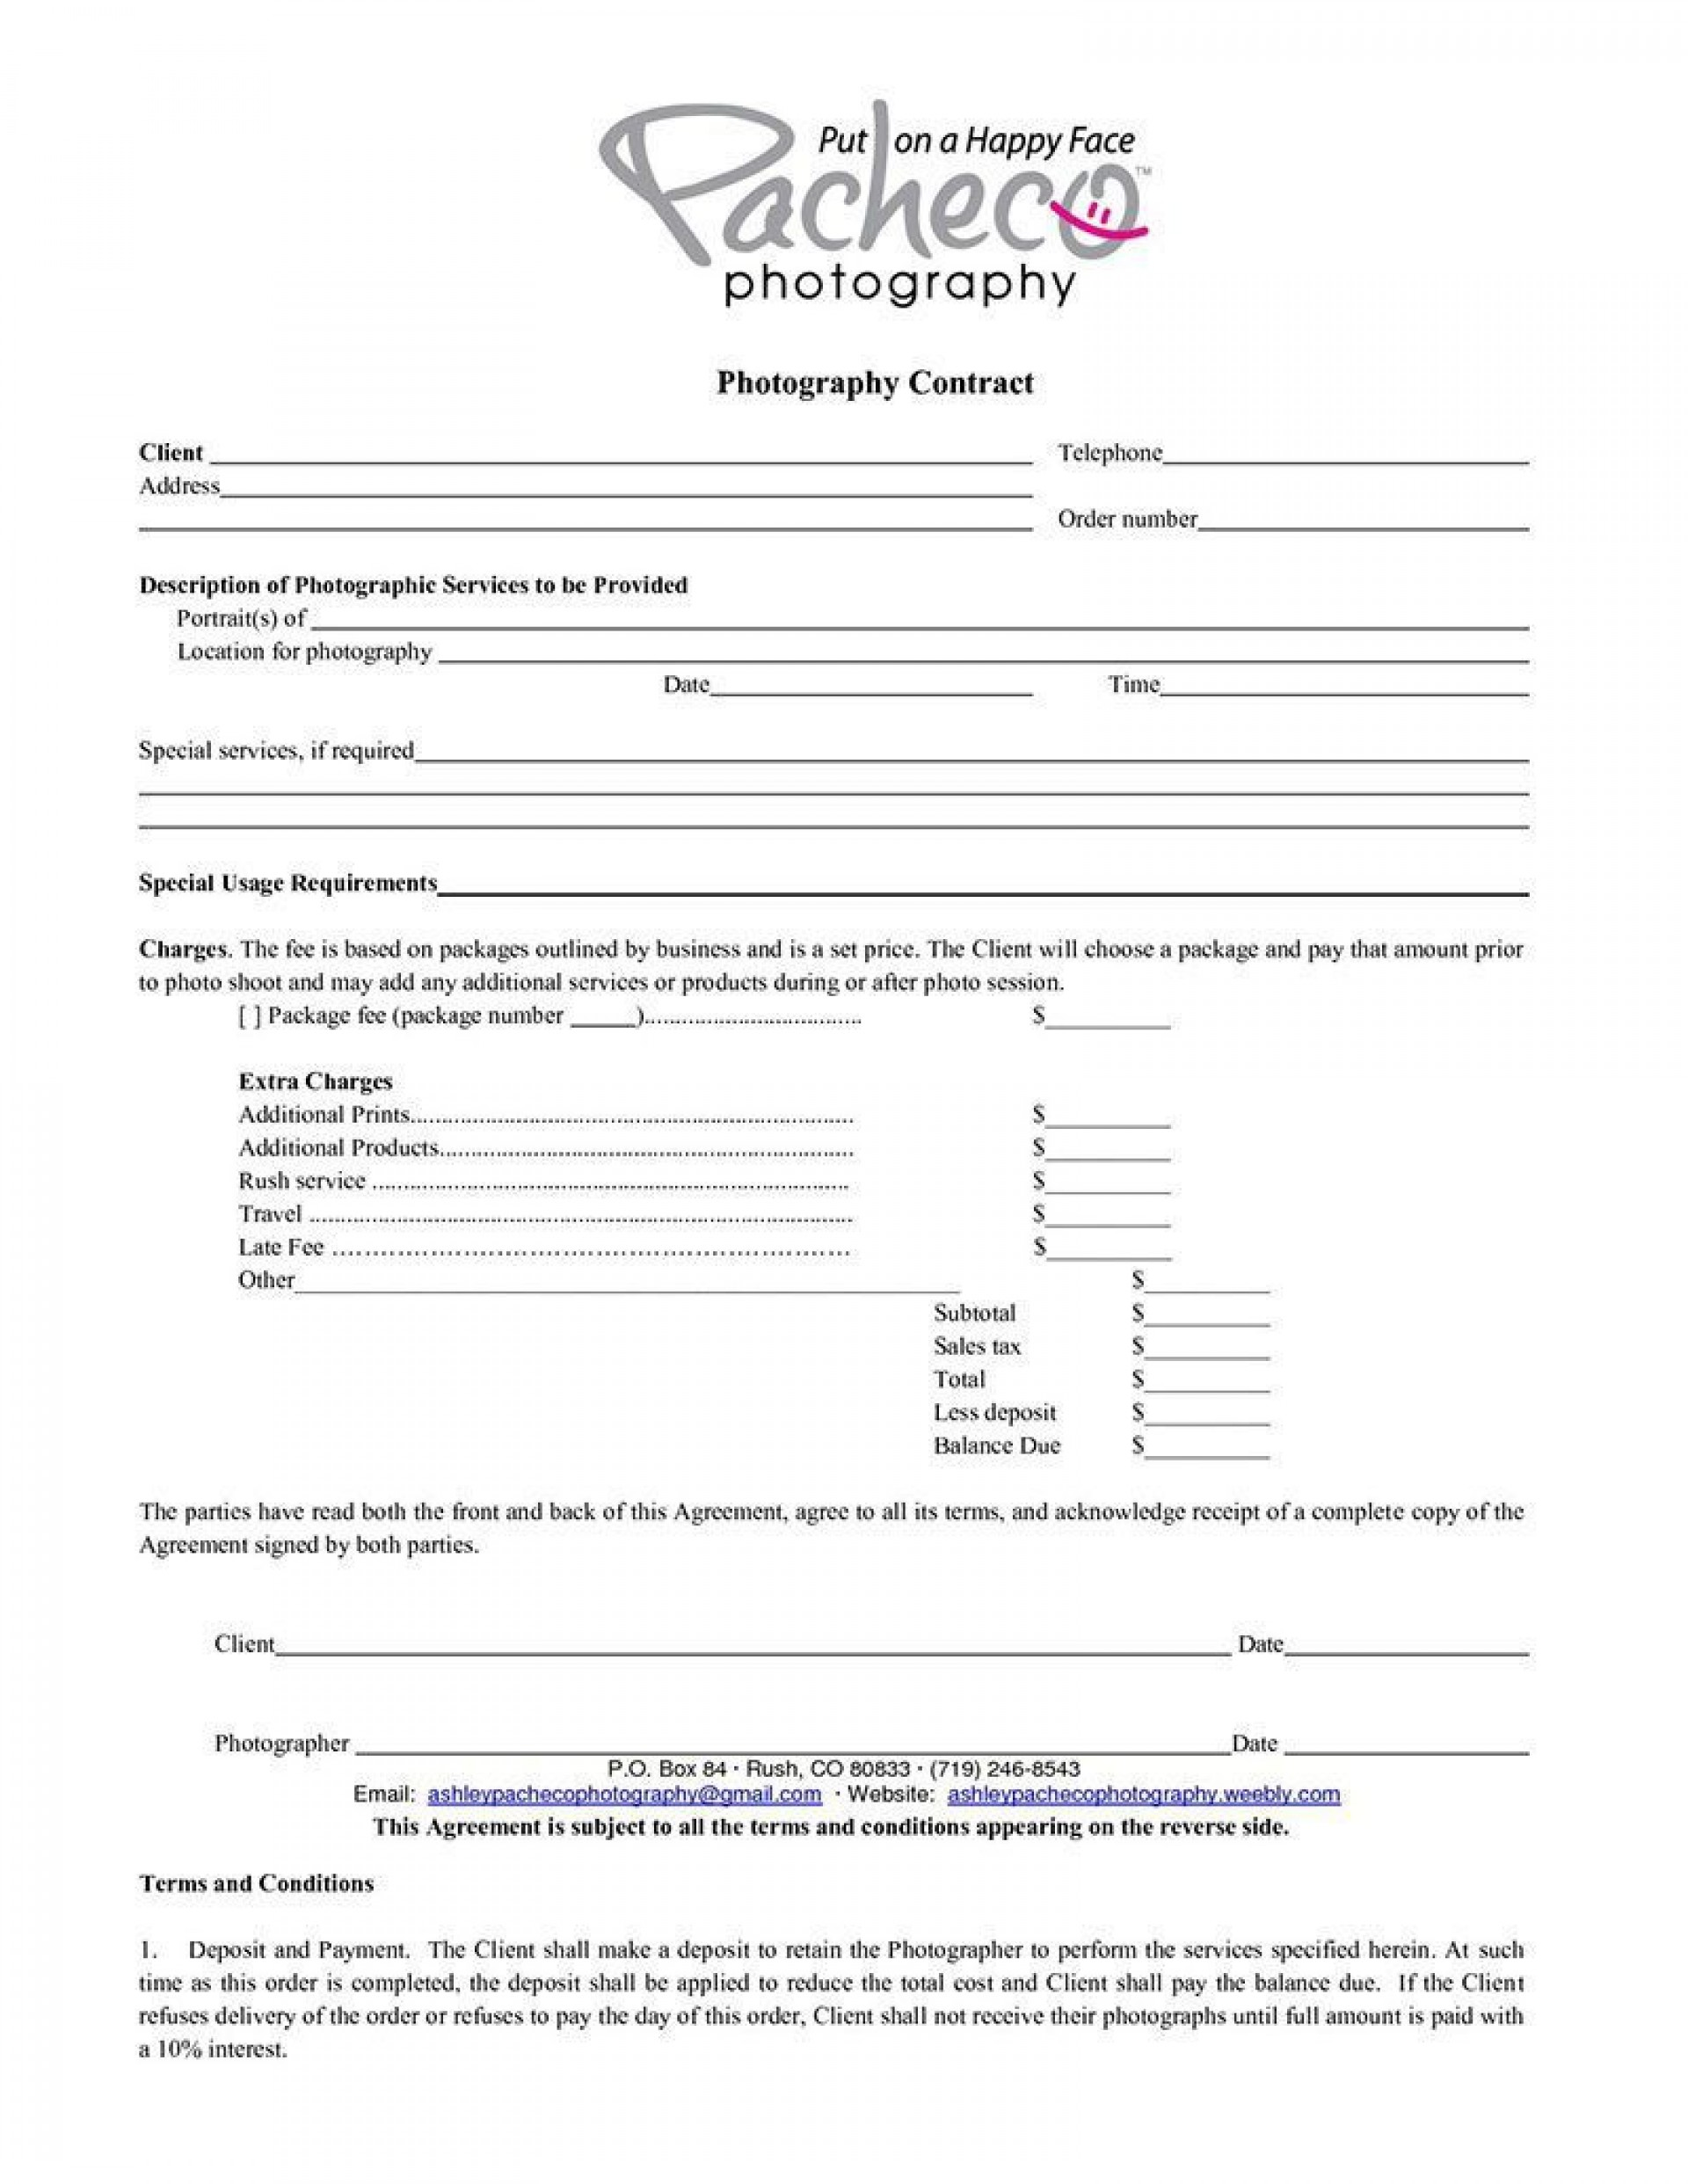 006 Surprising Wedding Photography Contract Template Canada High Definition 1920